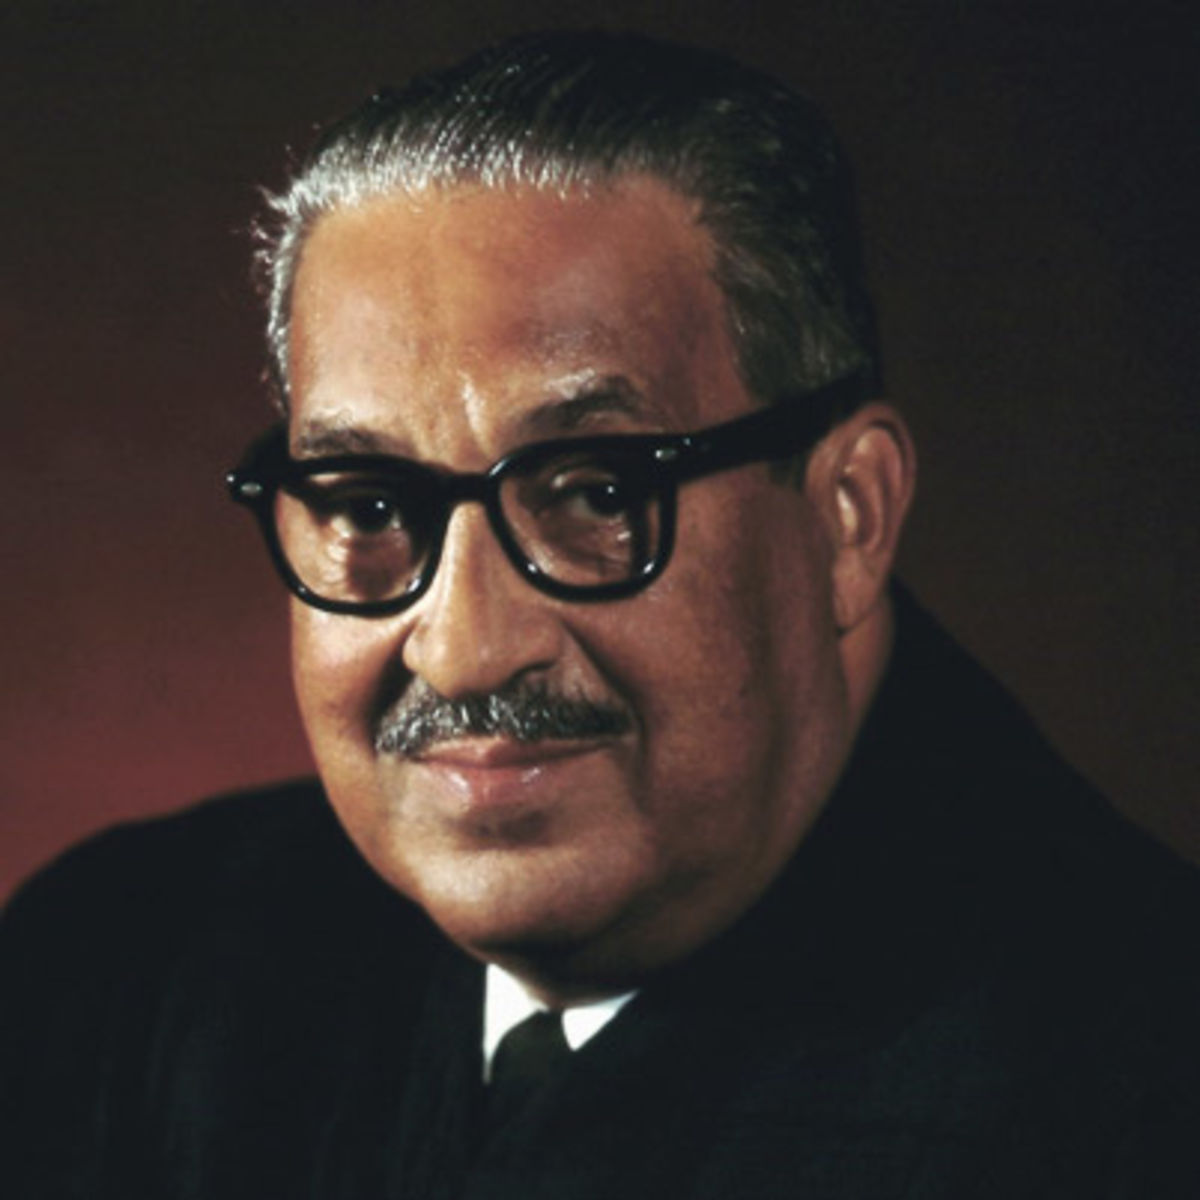 thurgood marshal Thurgood marshall, the great-grandson of slaves, was the first african american justice appointed to the united states supreme court, where he served from 1967 to 1991 earlier in his career, marshall was a pioneering civil rights attorney who successfully argued the landmark case brown v board of .